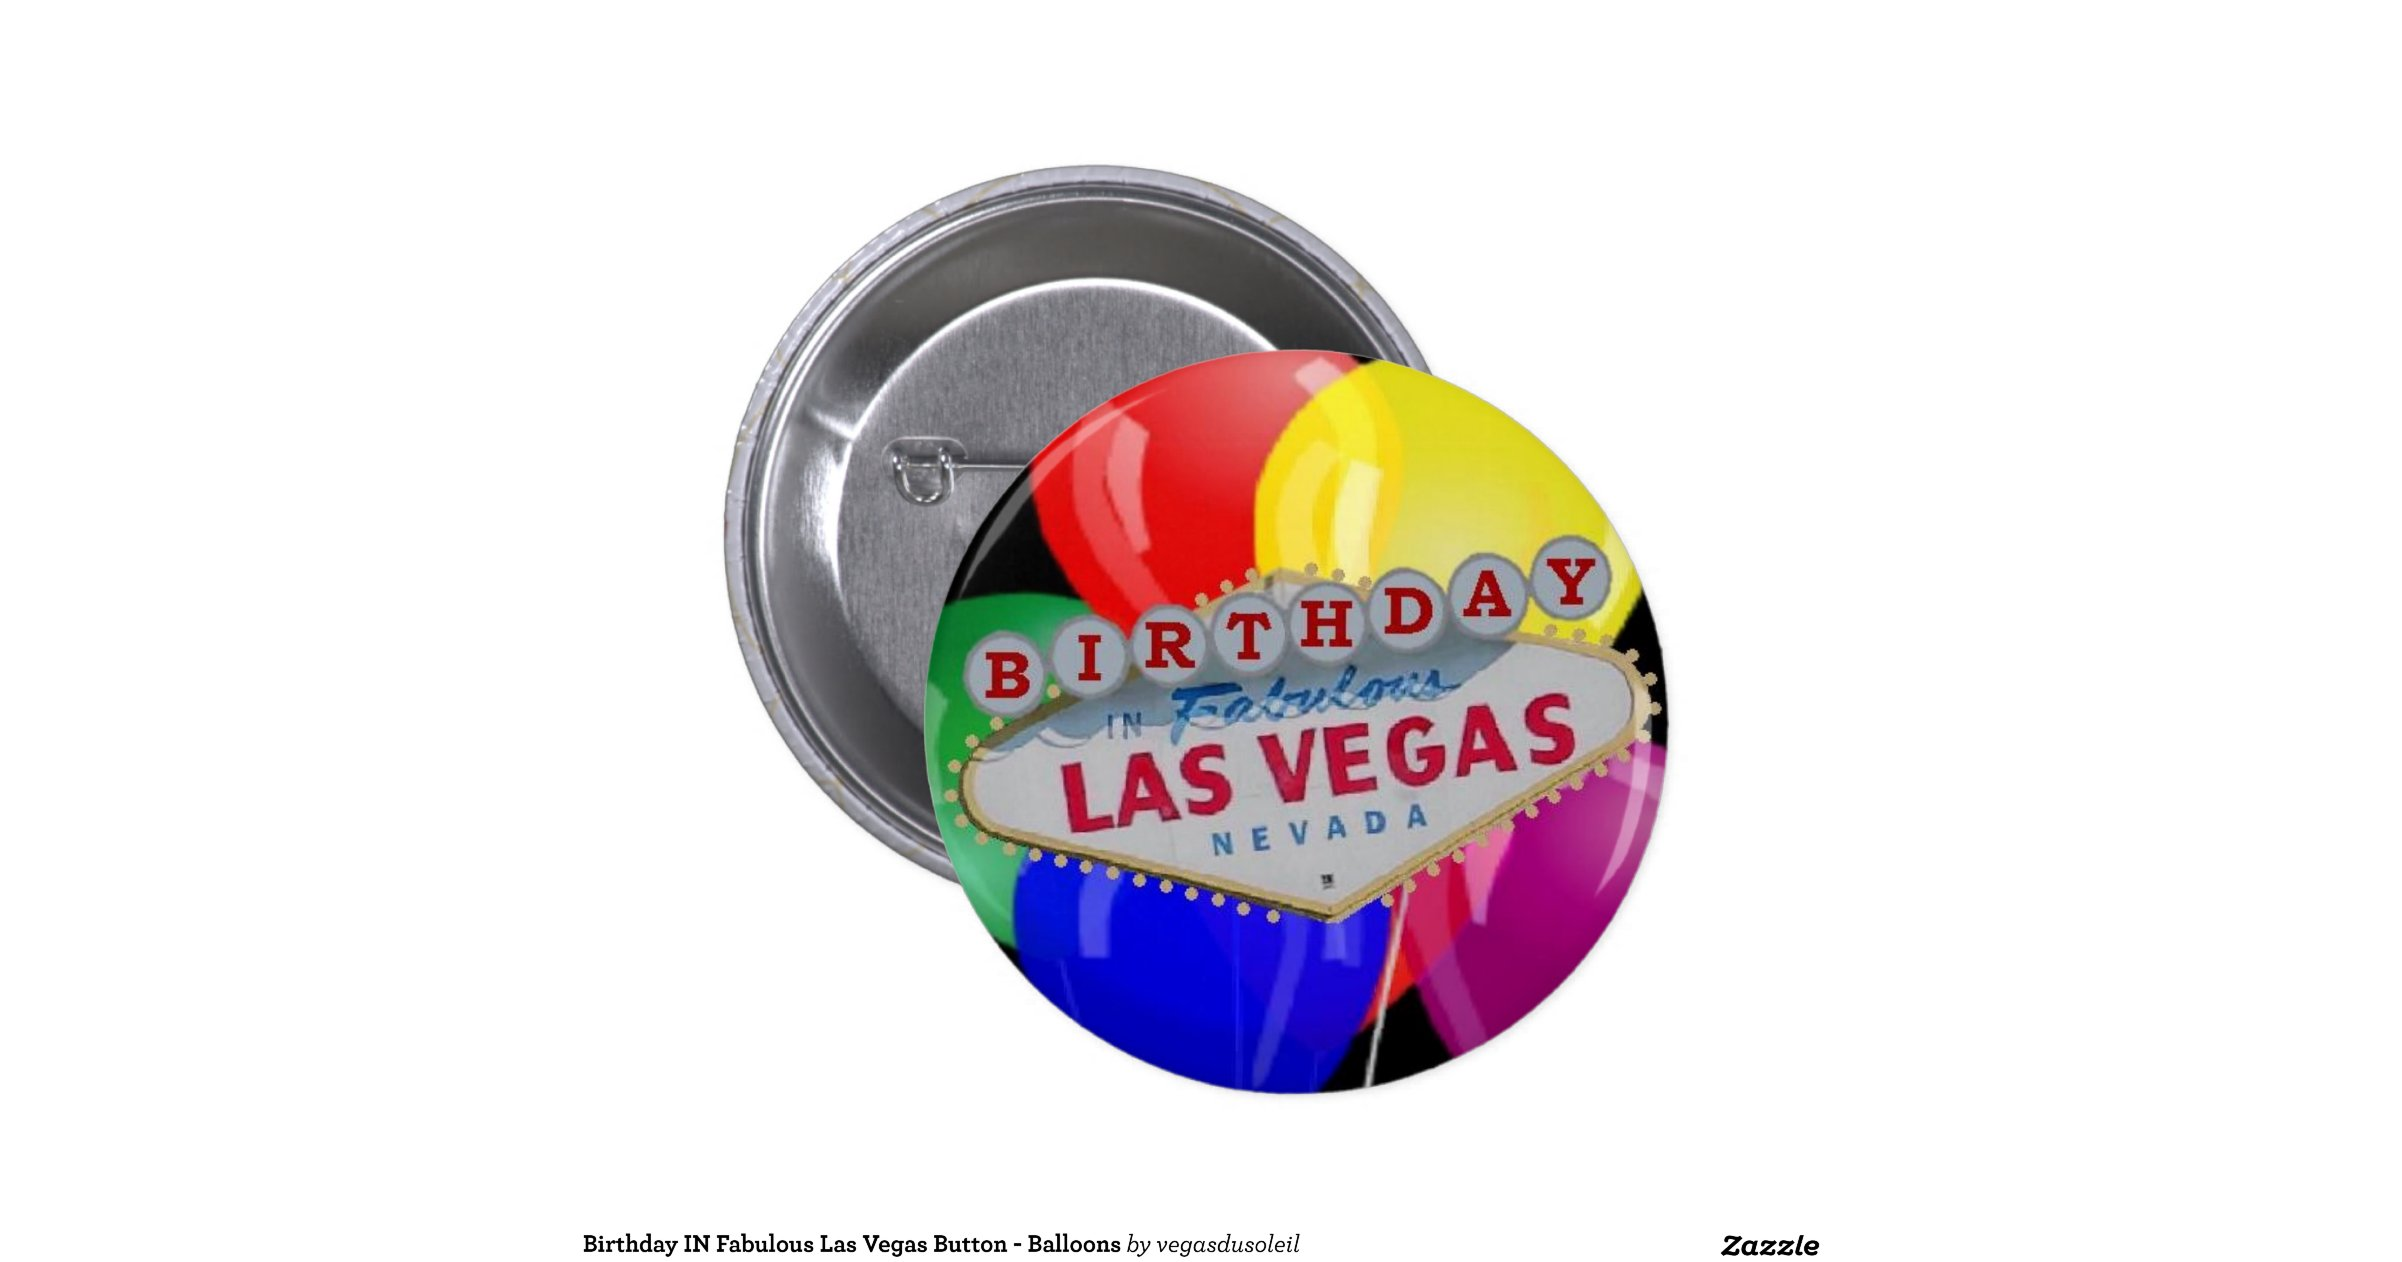 Colorful Birthday Balloon Bouquets For Same Day Delivery In Las Vegas Nevada USA By A Local FloristTake 40 60 Minutes Ride Over Beautiful